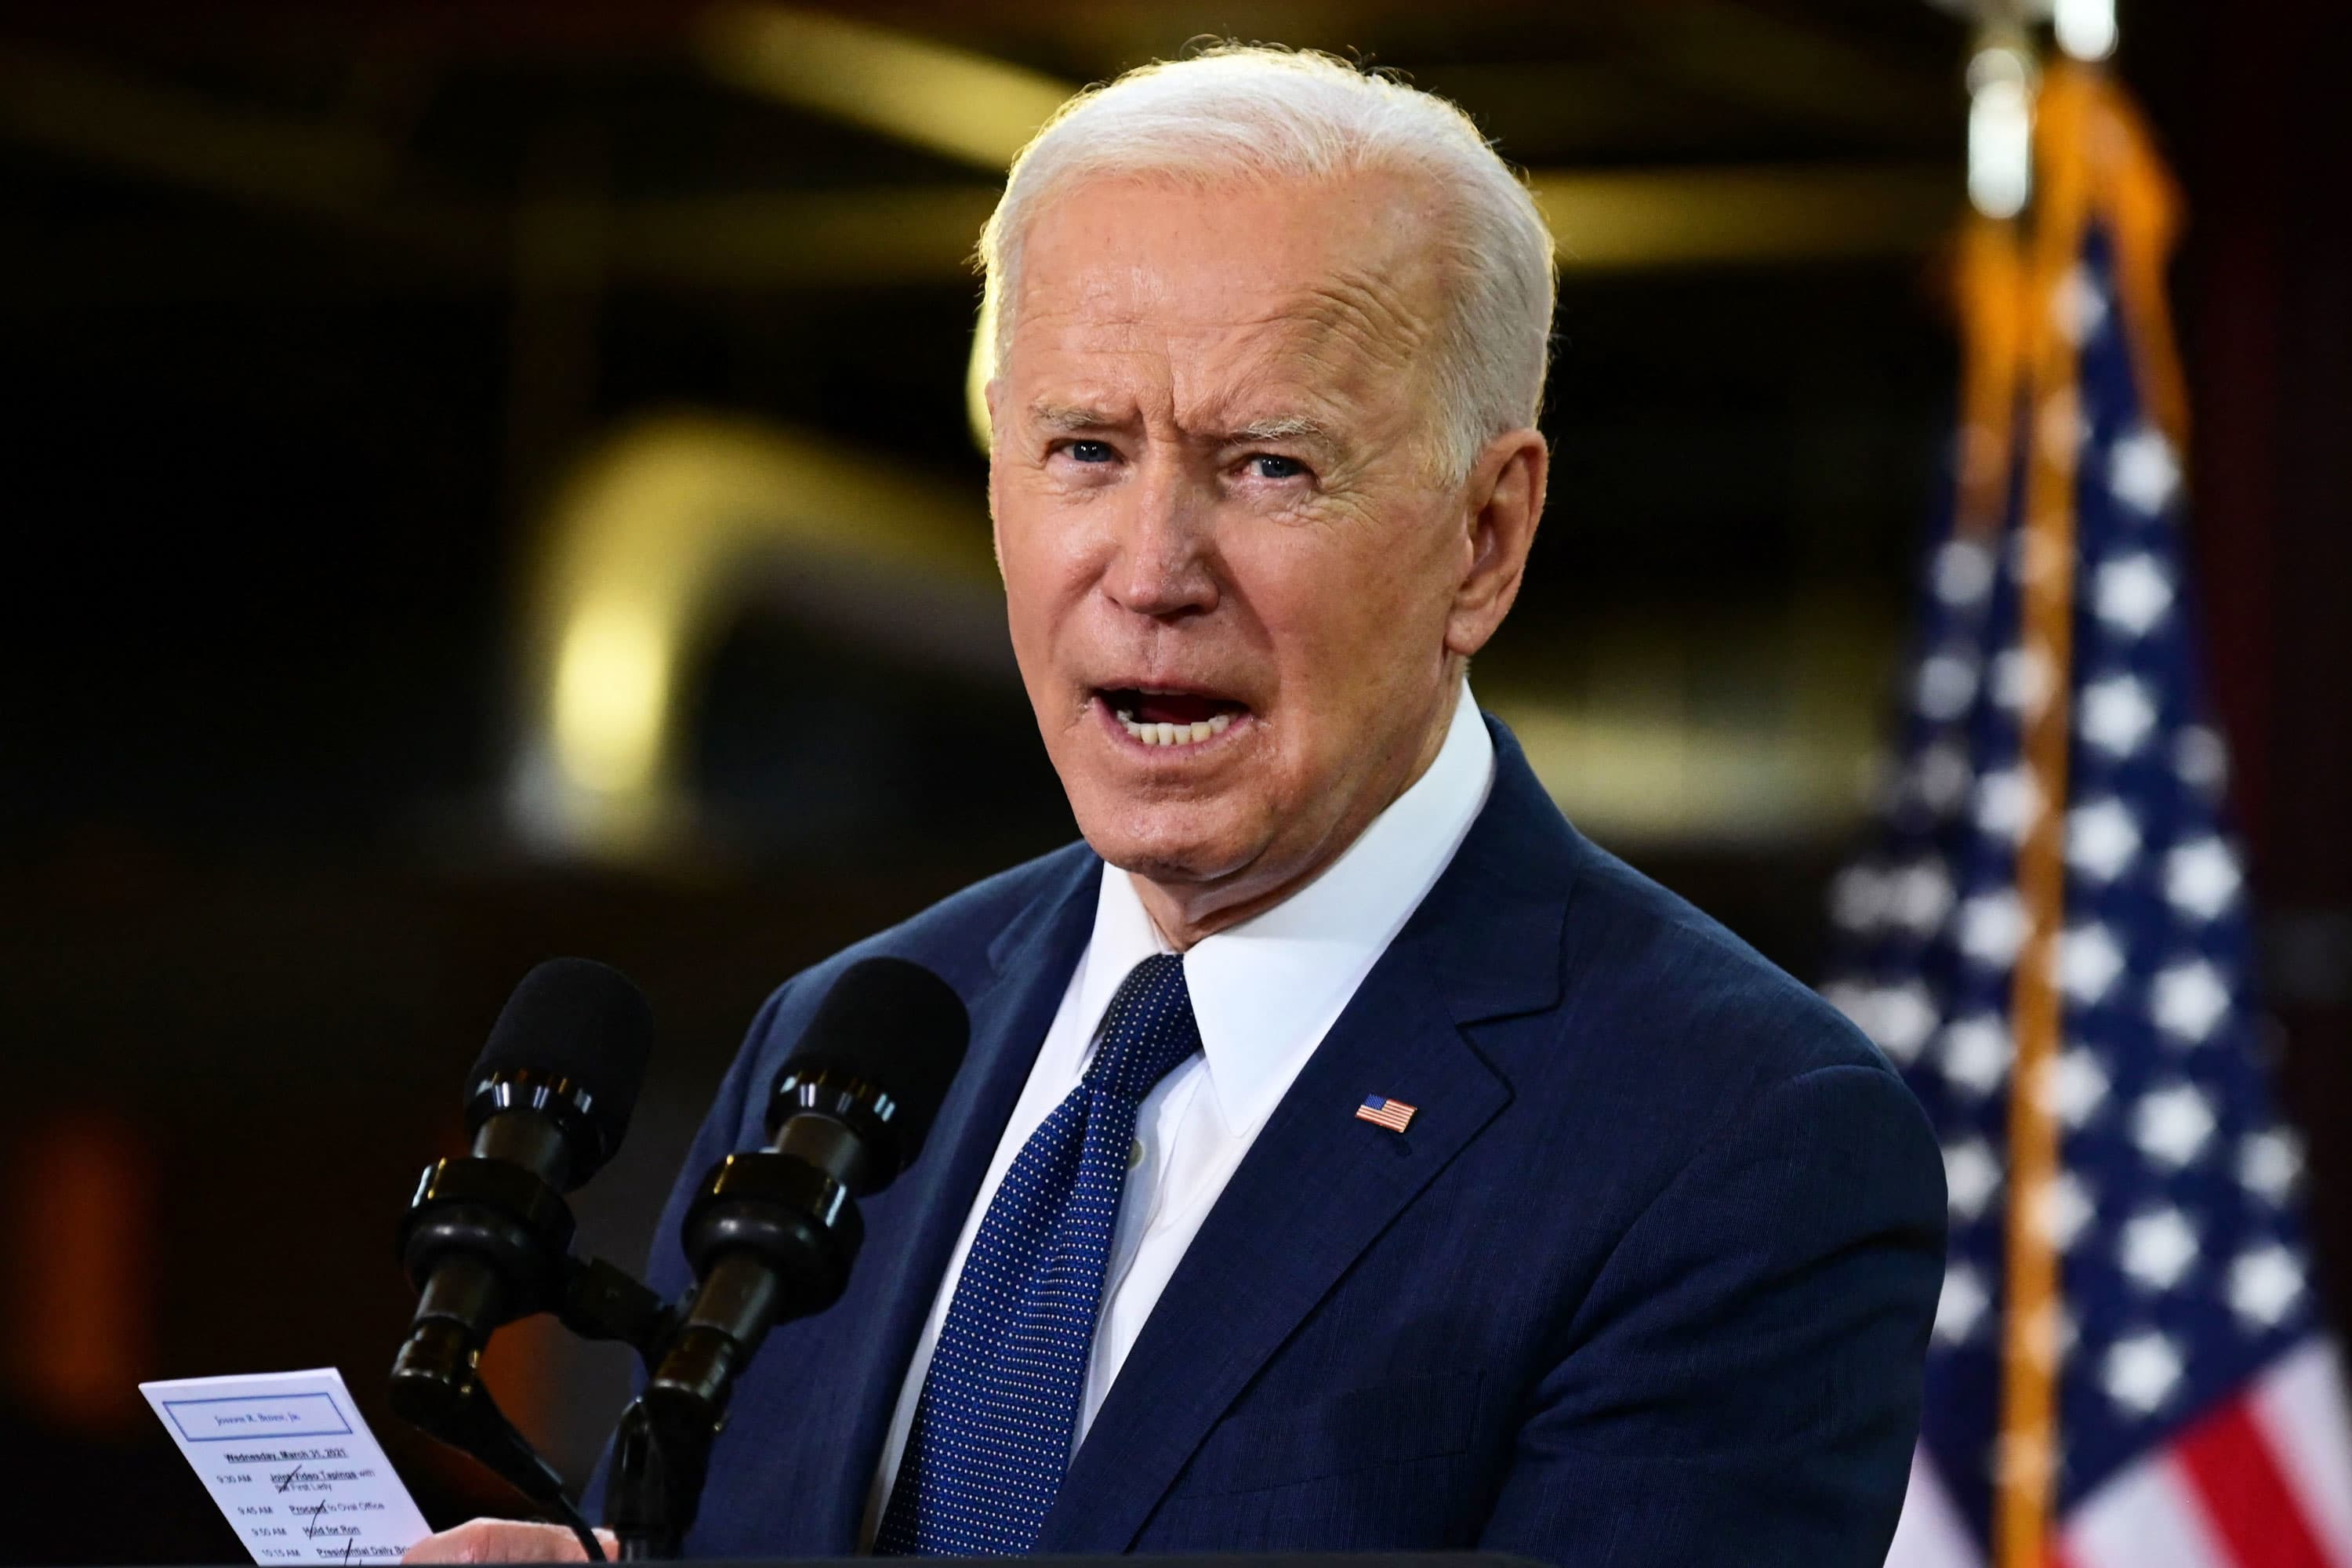 Biden Administration Makes Pitch for Higher Business Taxes